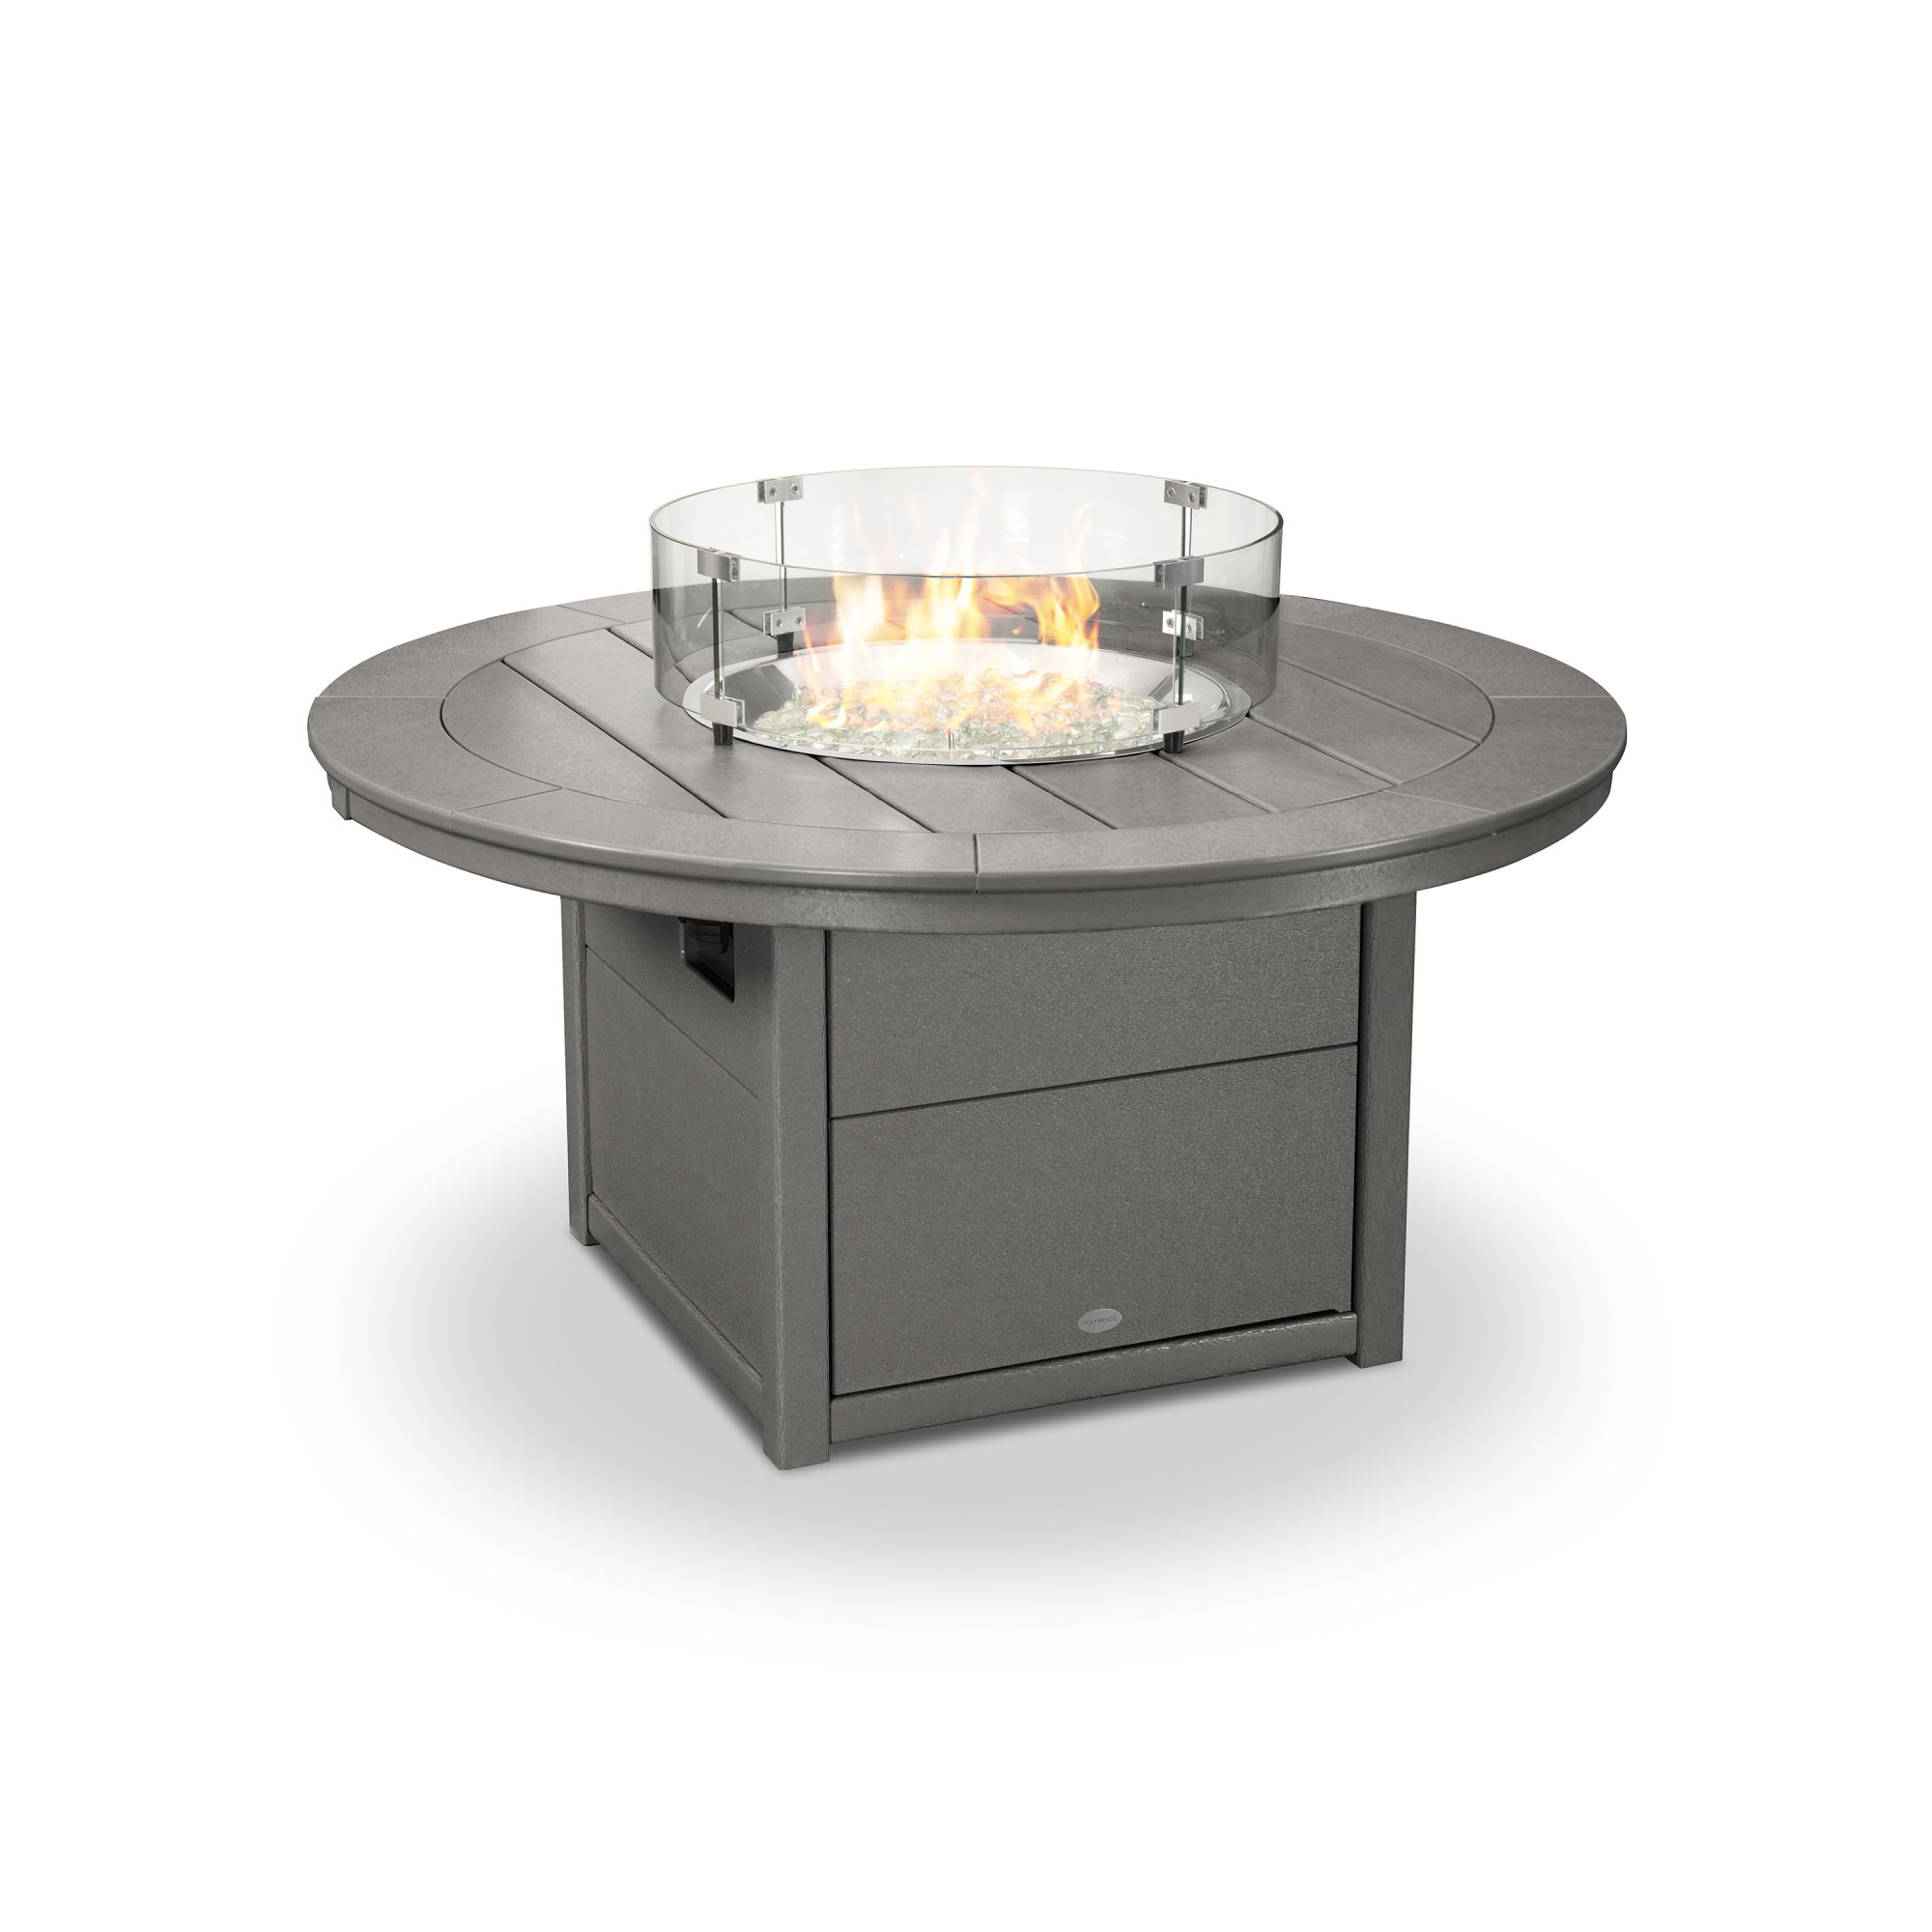 Picture of: Polywood Round 48 Fire Pit Table Ctf48r Polywood Official Store